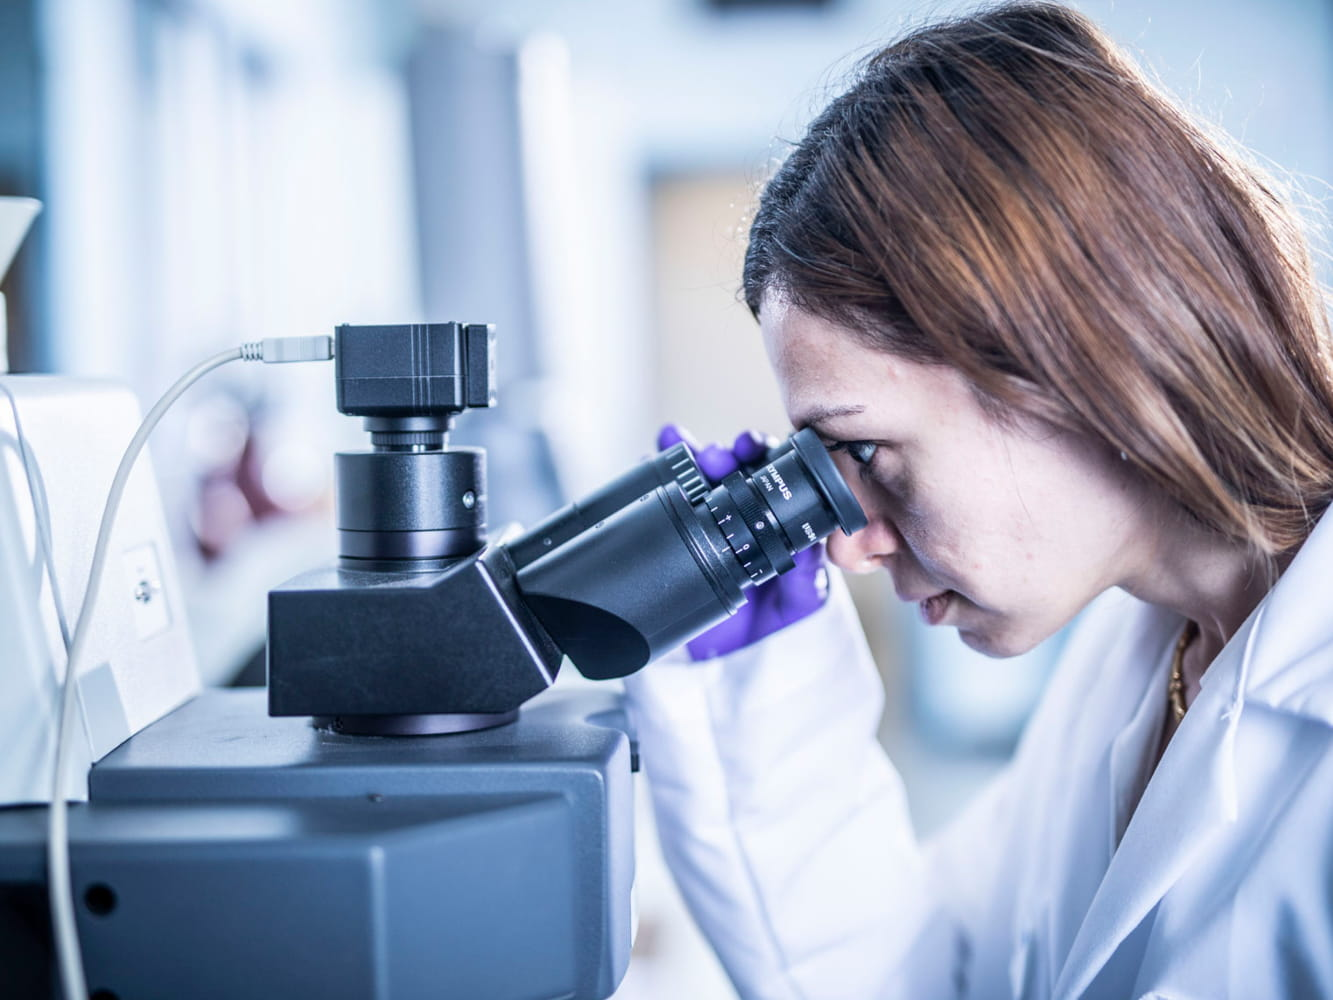 Detecting contamination in pharmaceutical products